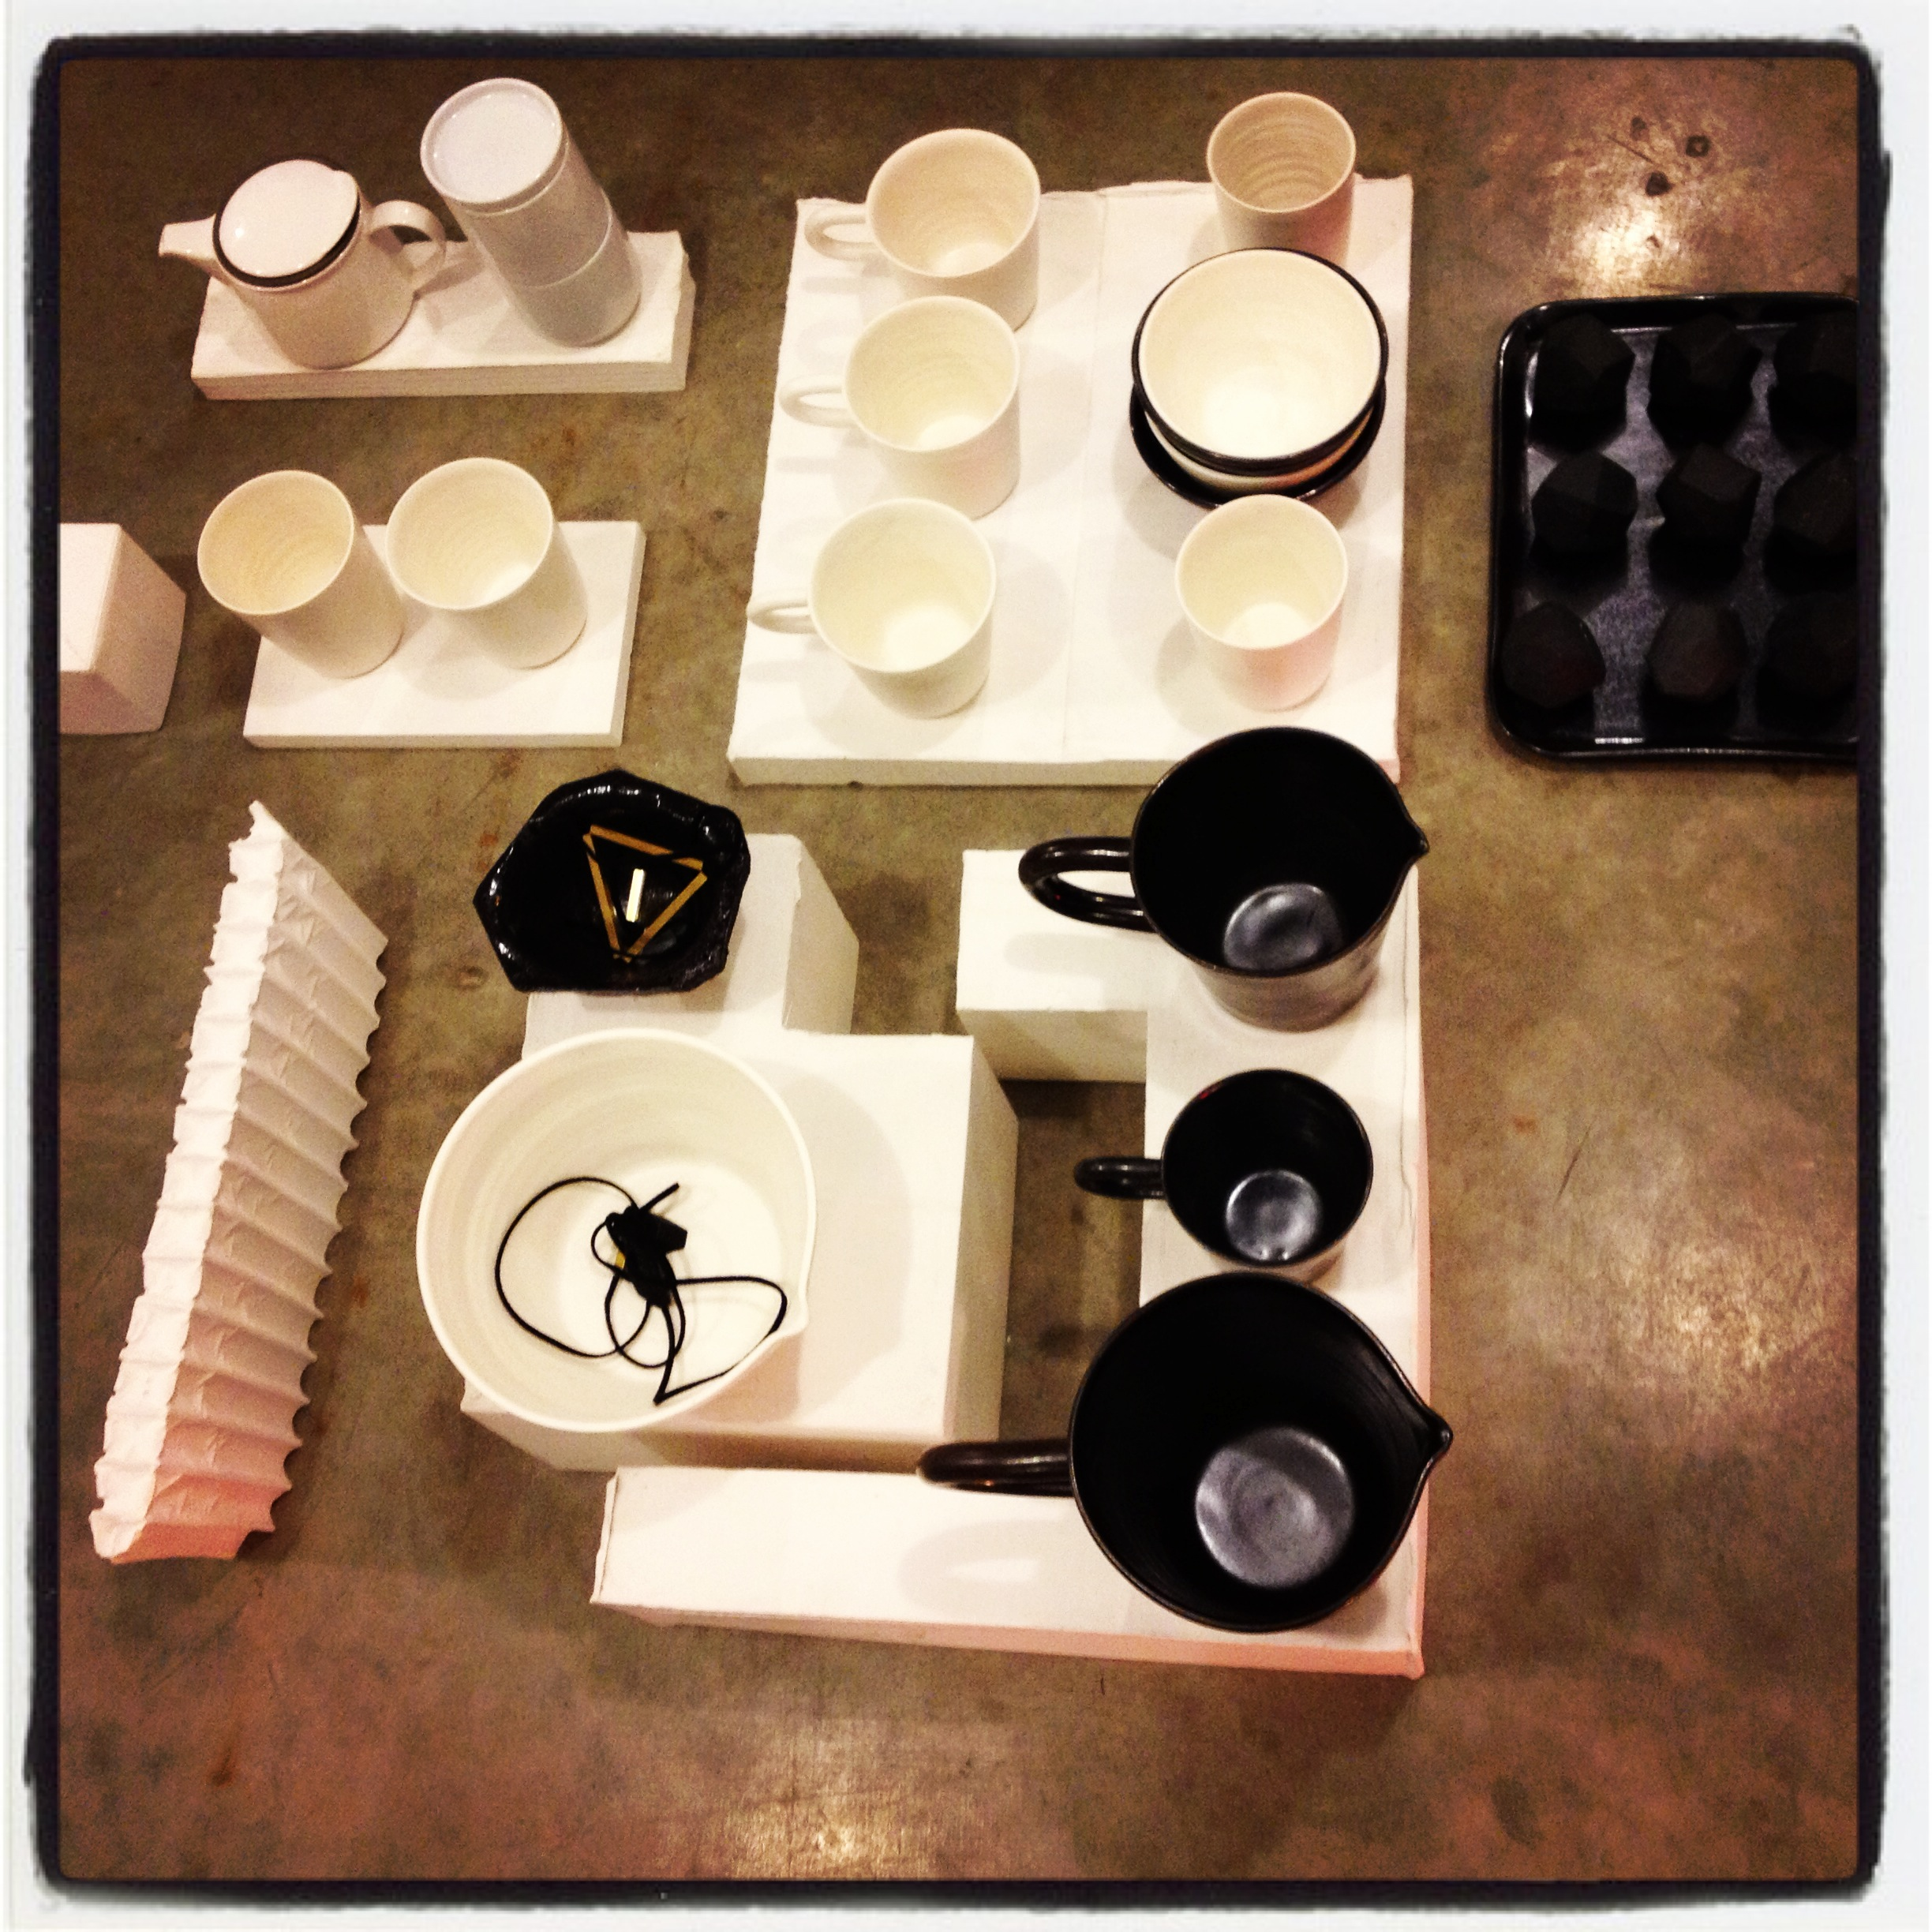 Black and White Pottery at Mociun, Williamsburg Brooklyn NY | DeSmitten Design Blog